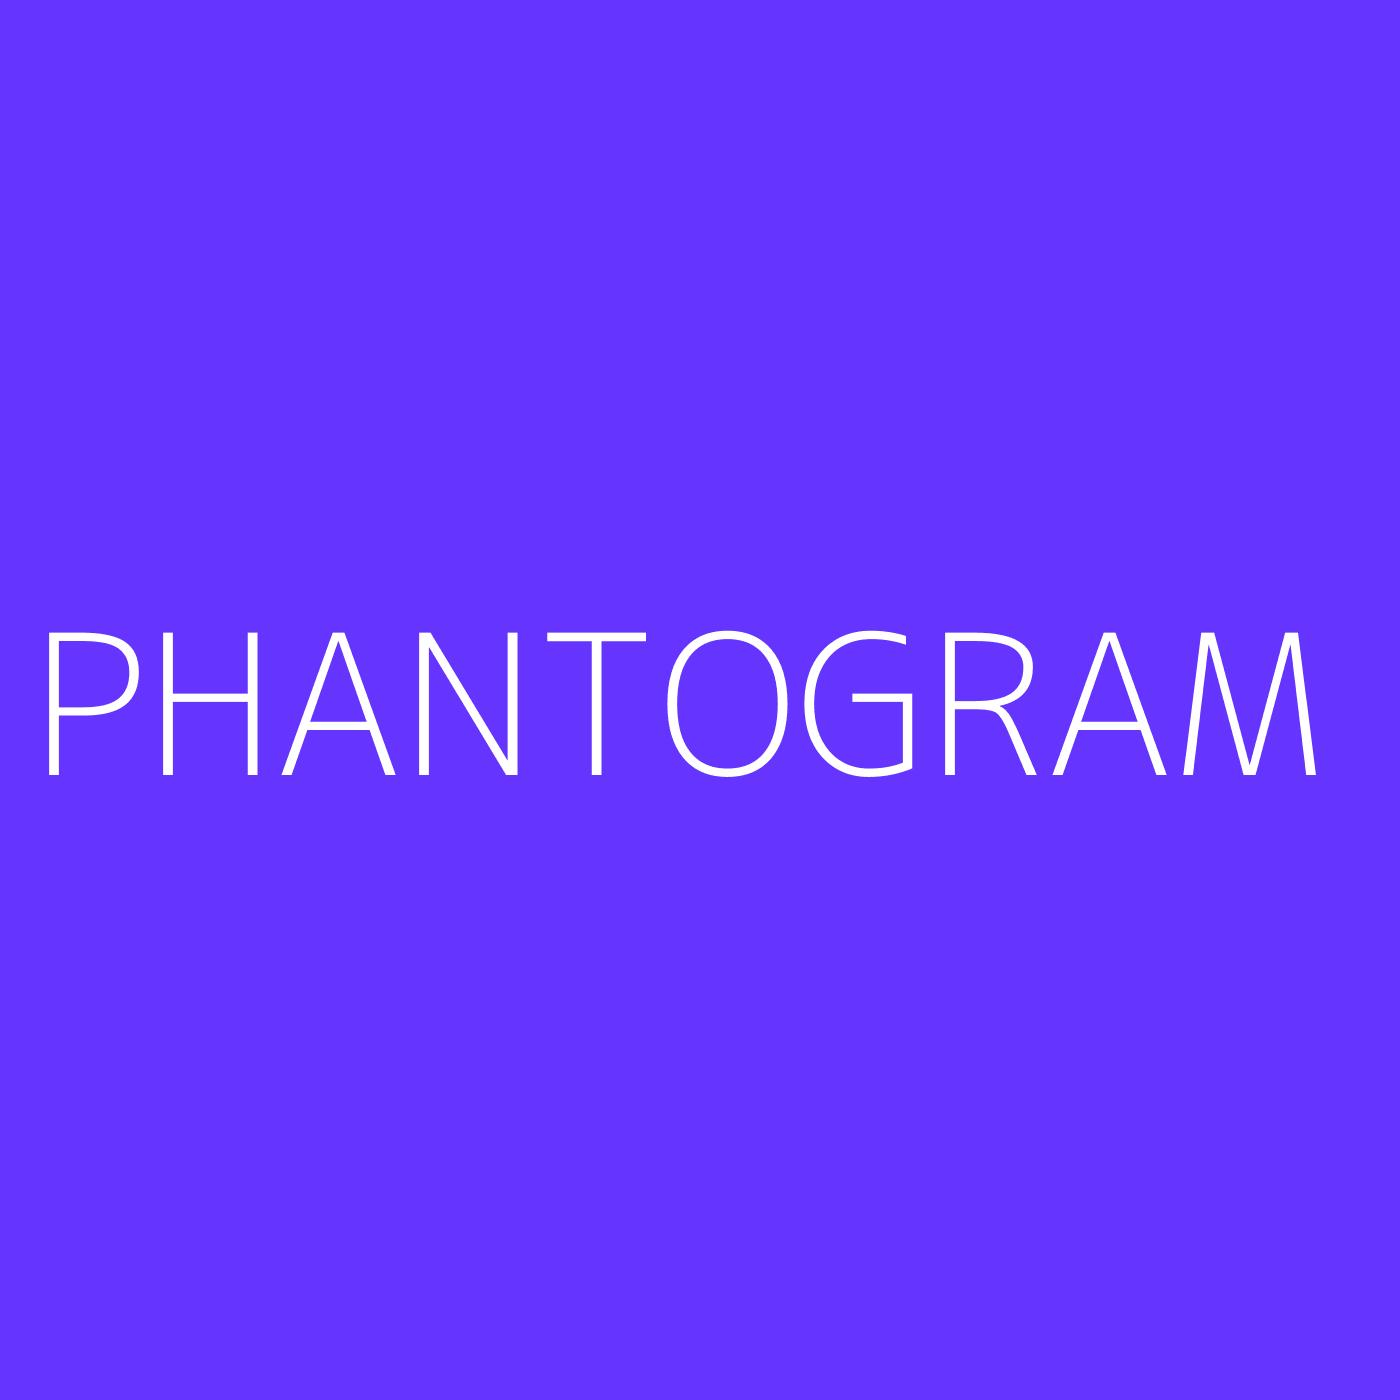 Phantogram Playlist Artwork